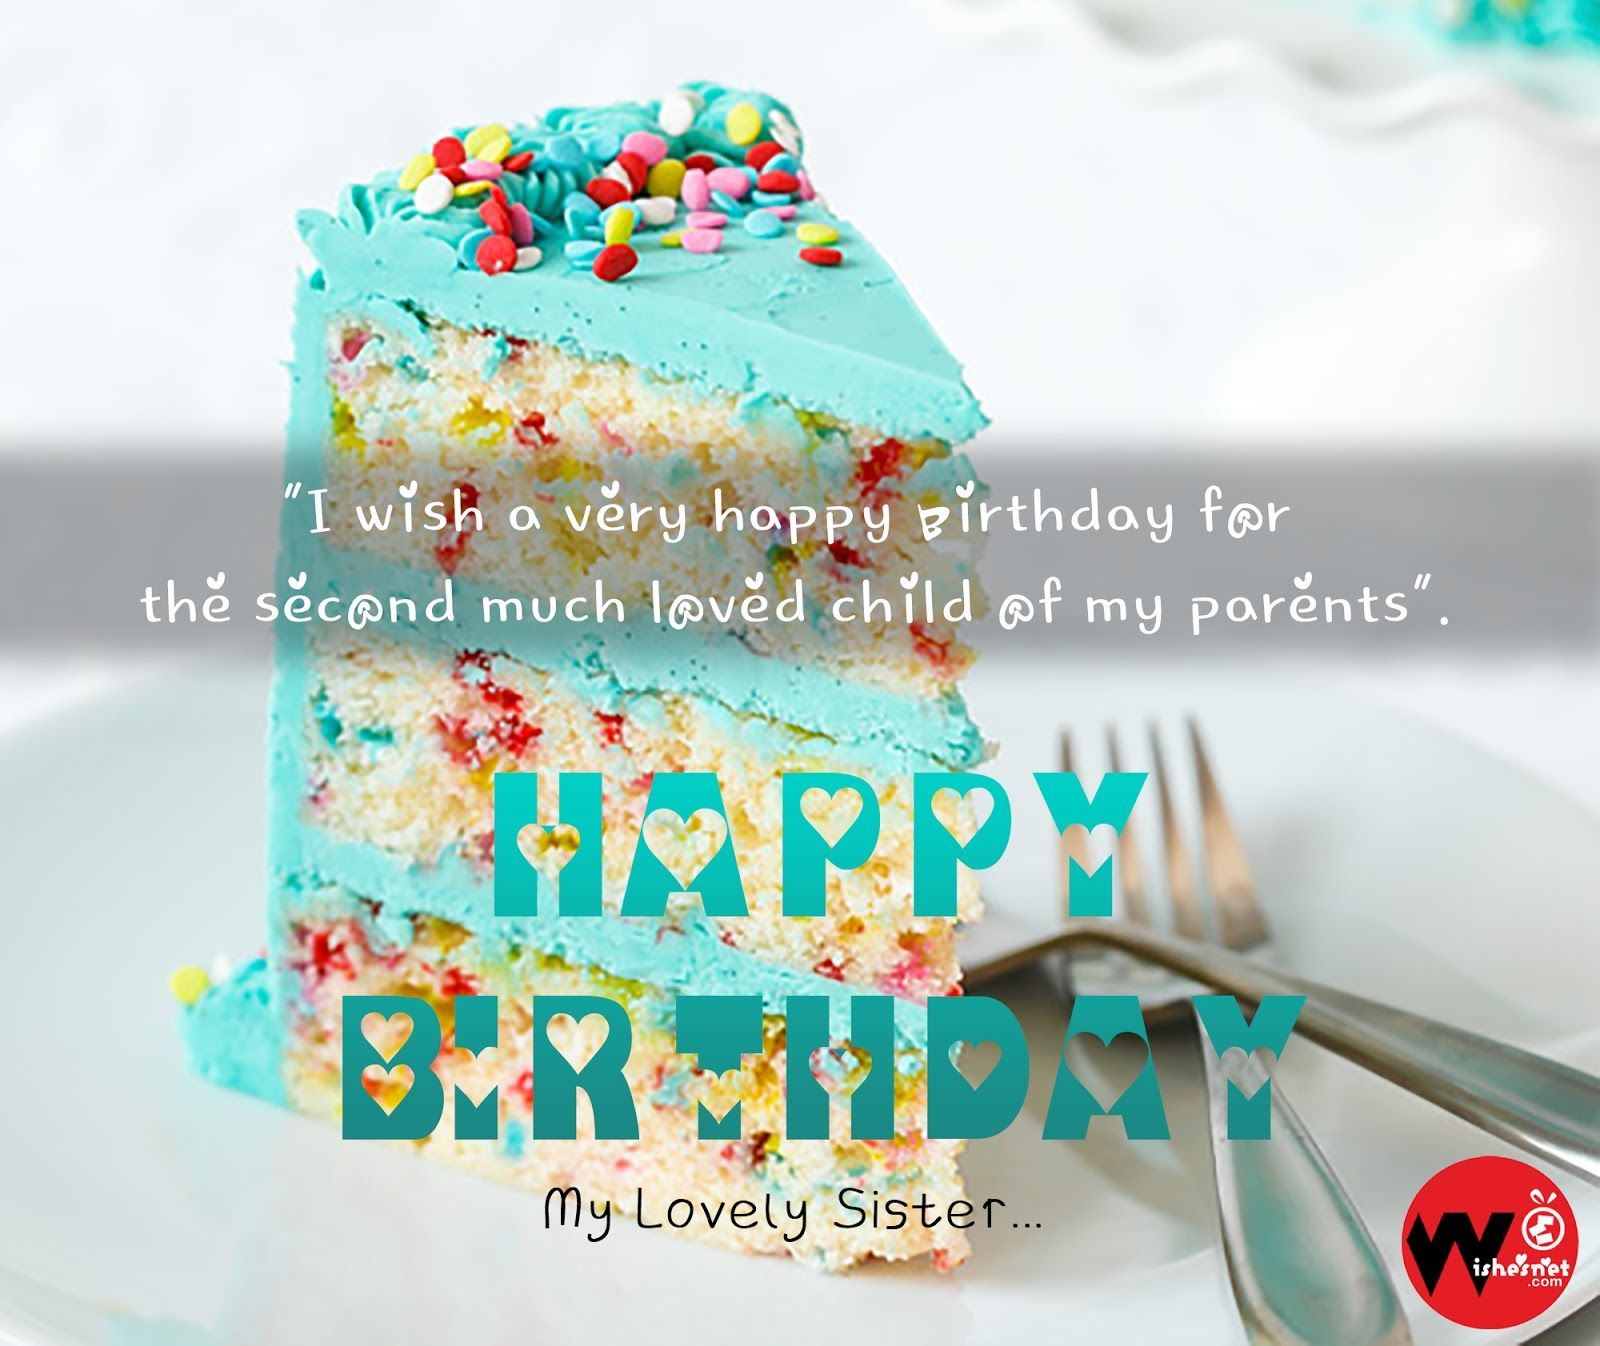 Happy Birthday Cake Image For Sister Free Download Happy Birthday